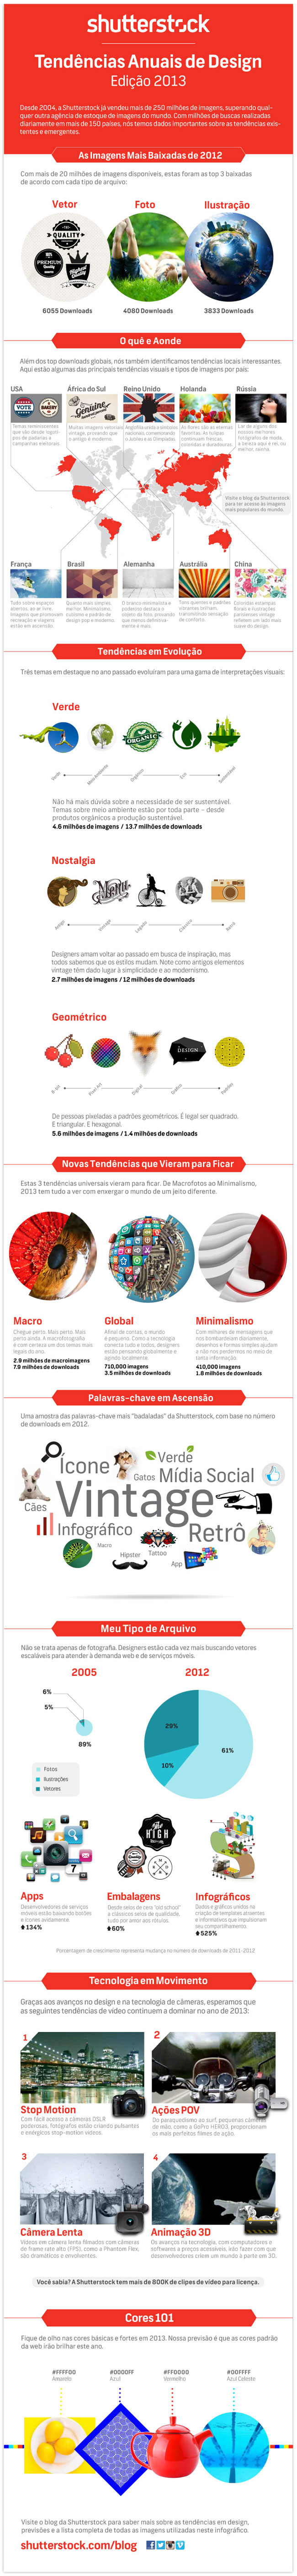 infografico_tendencias-design-2013